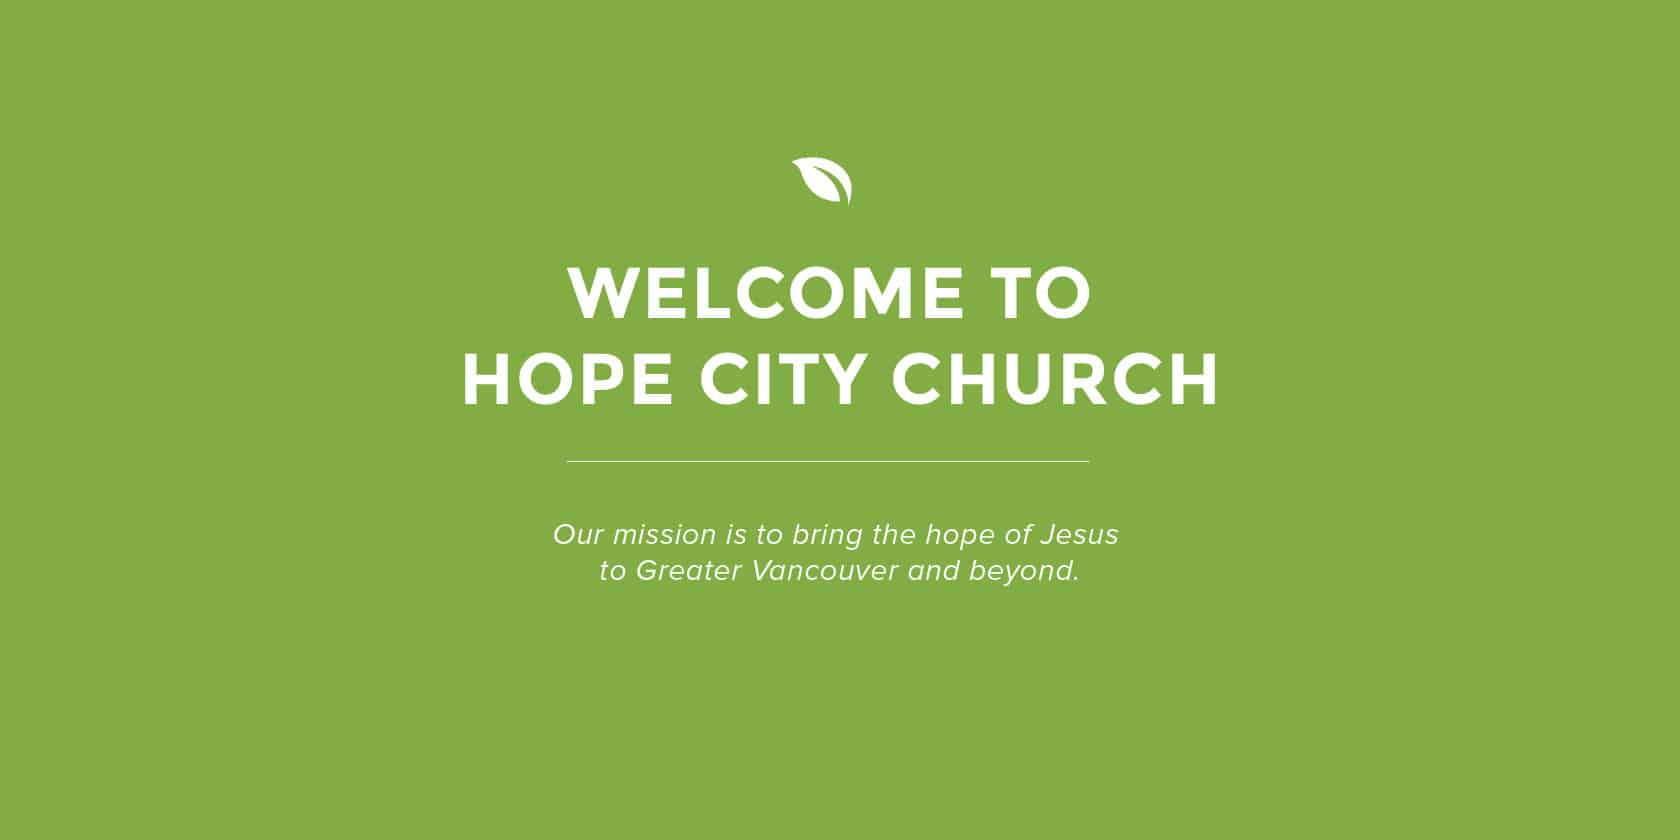 Welcom to Hope City Church